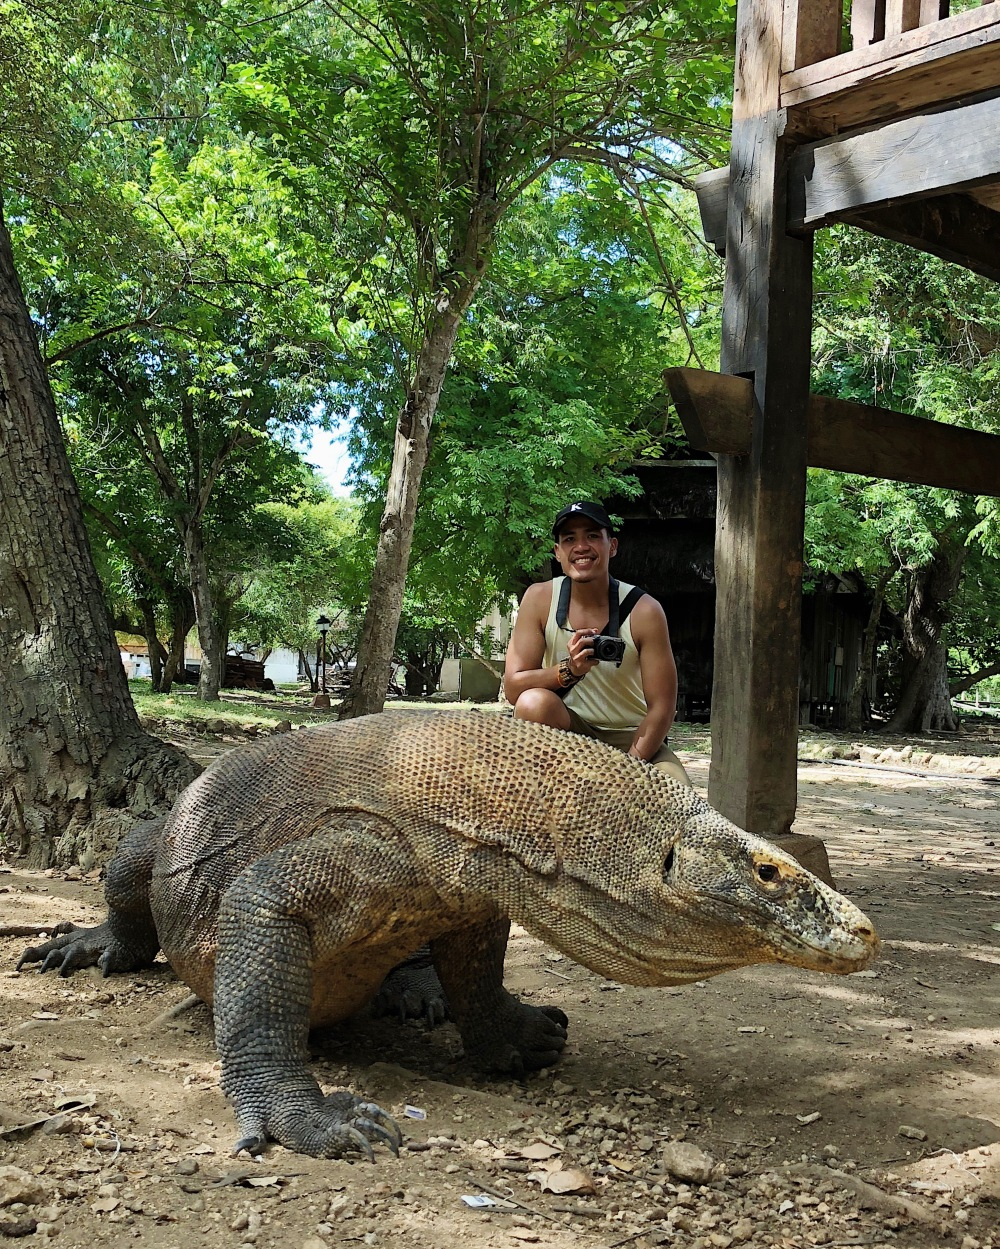 MINGLING WITH THE KOMODO DRAGON.